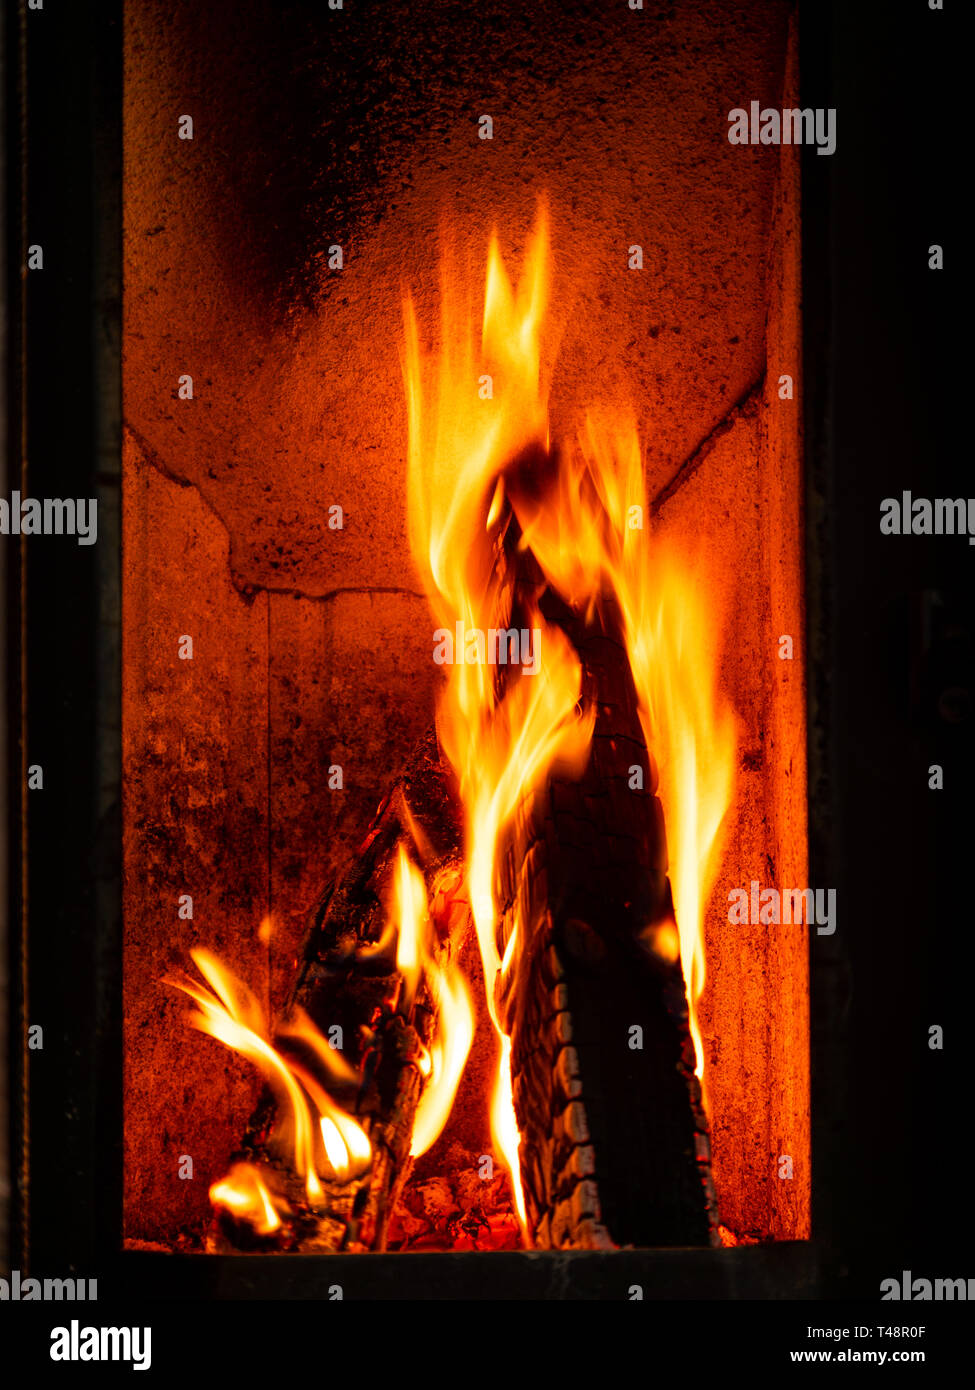 Image of burning wood logs in fire place - Stock Image